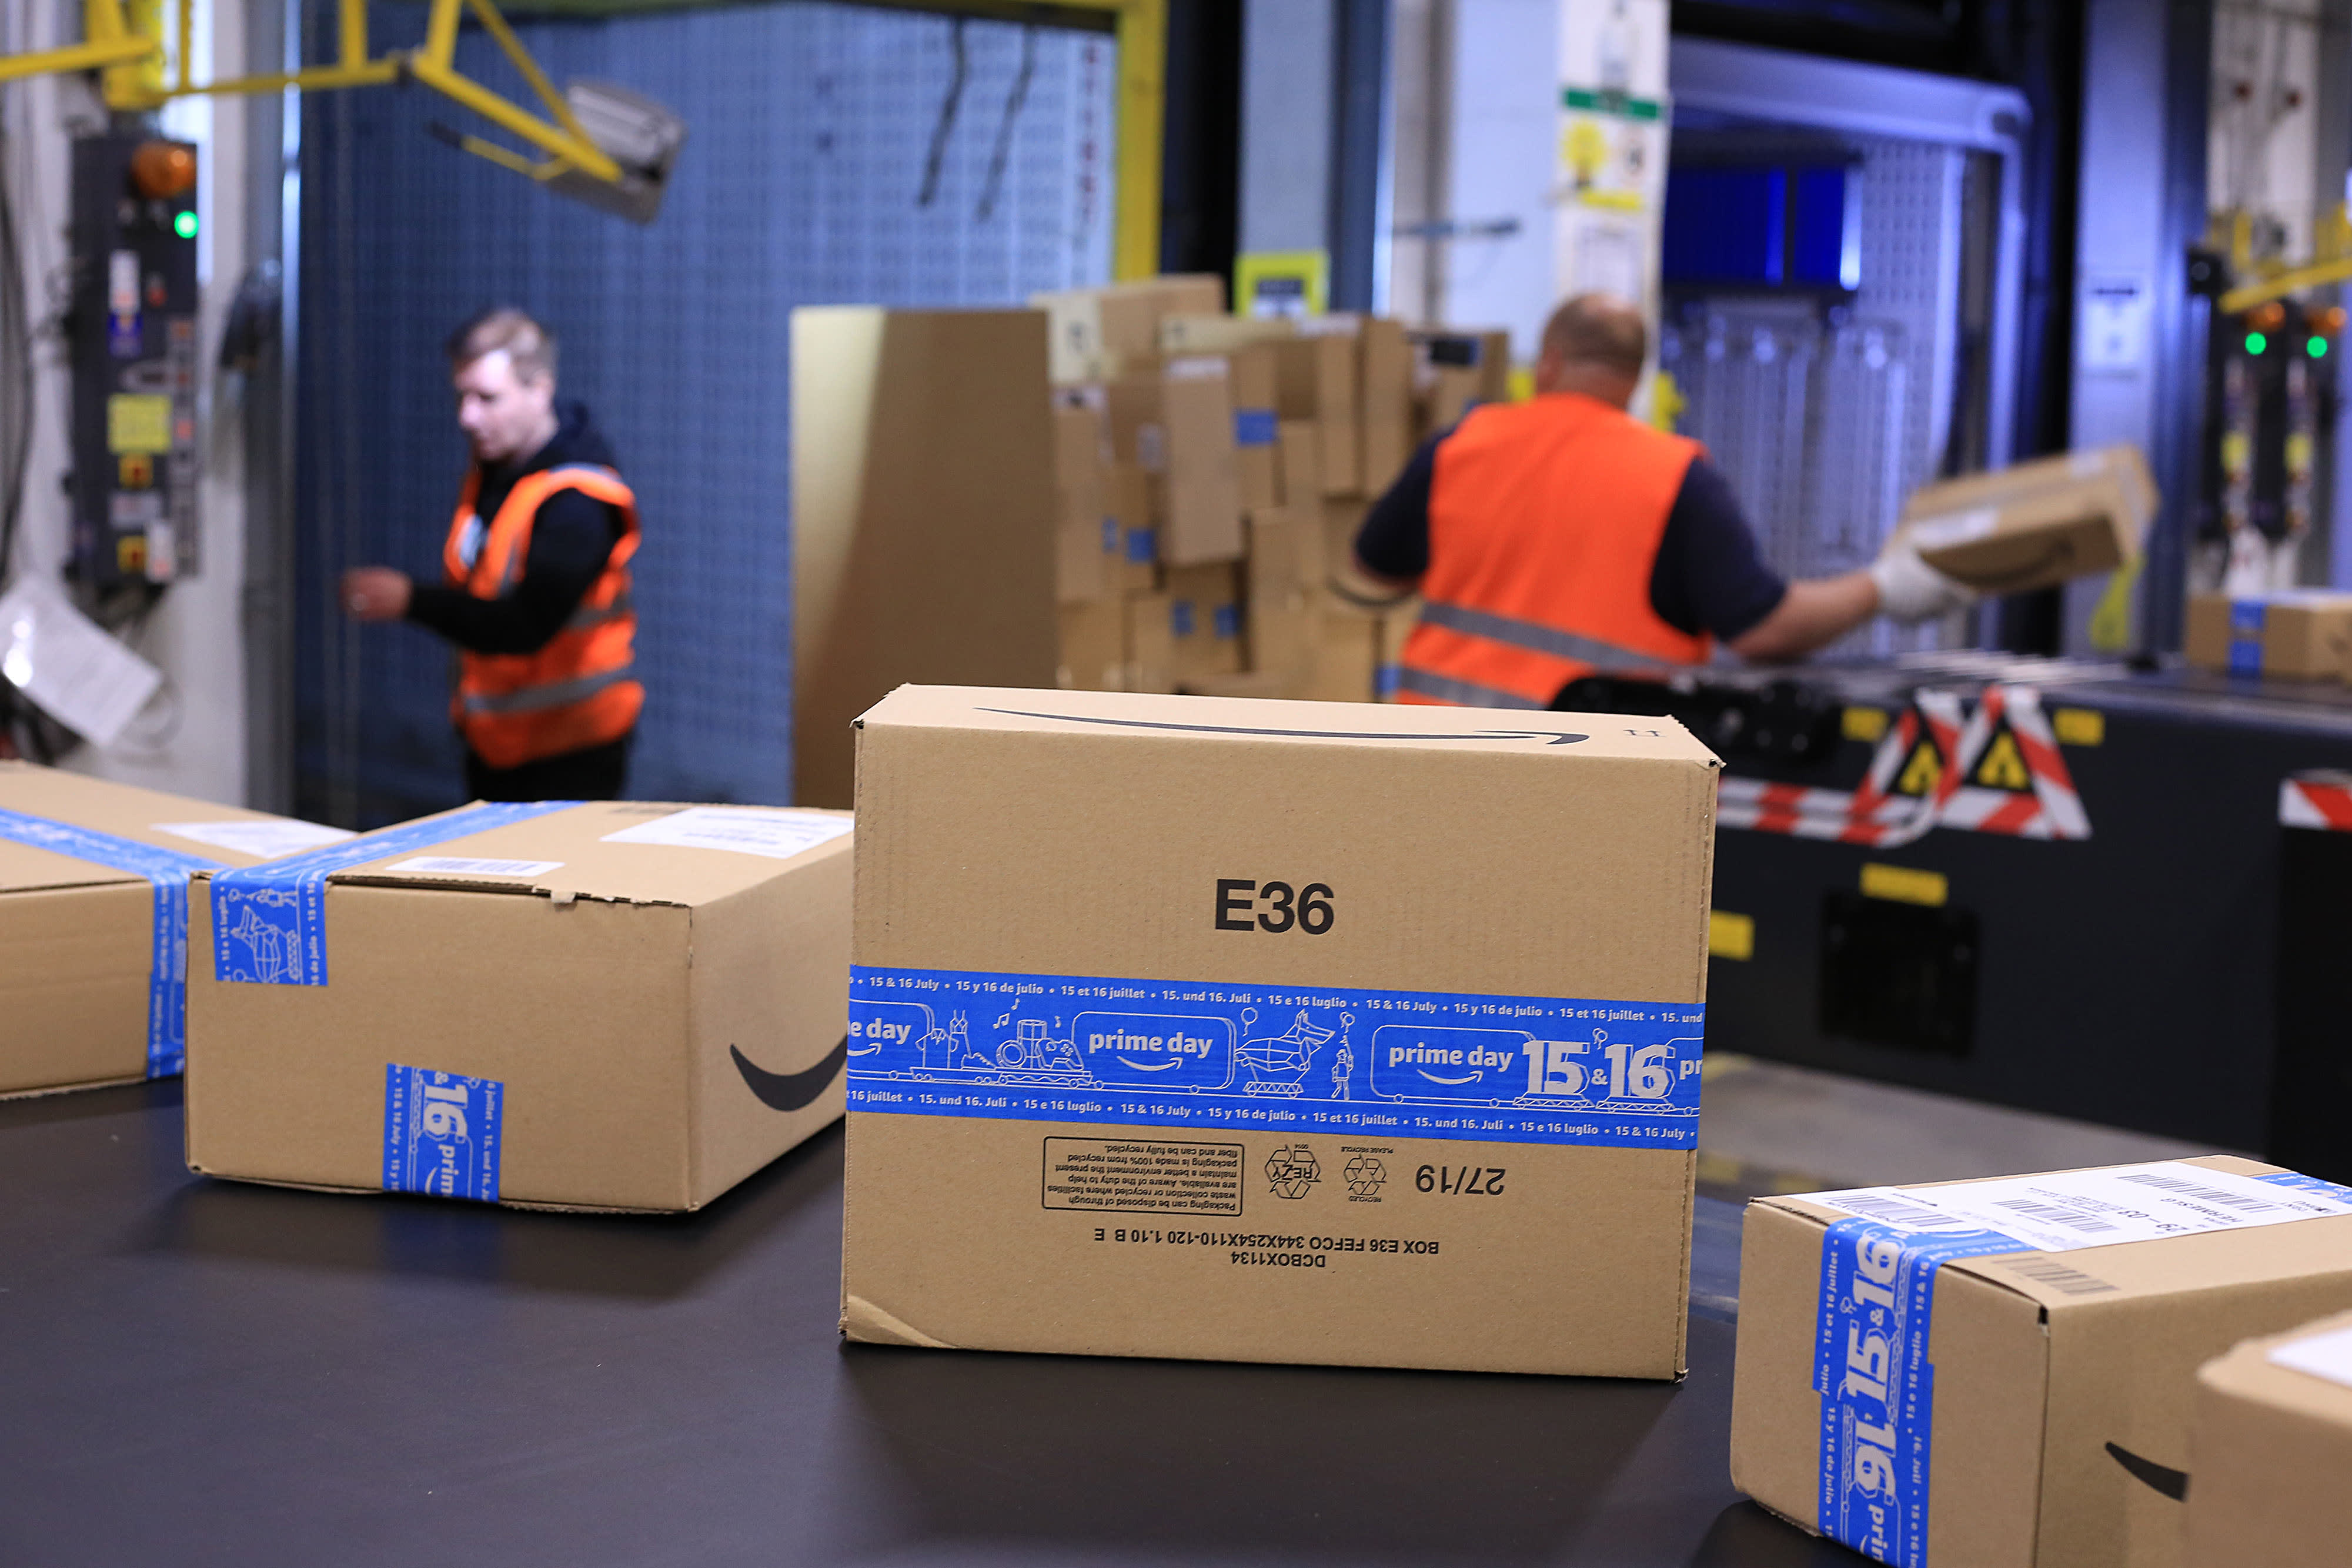 Amazon says this year's Prime Day surpassed Black Friday and Cyber Monday combined